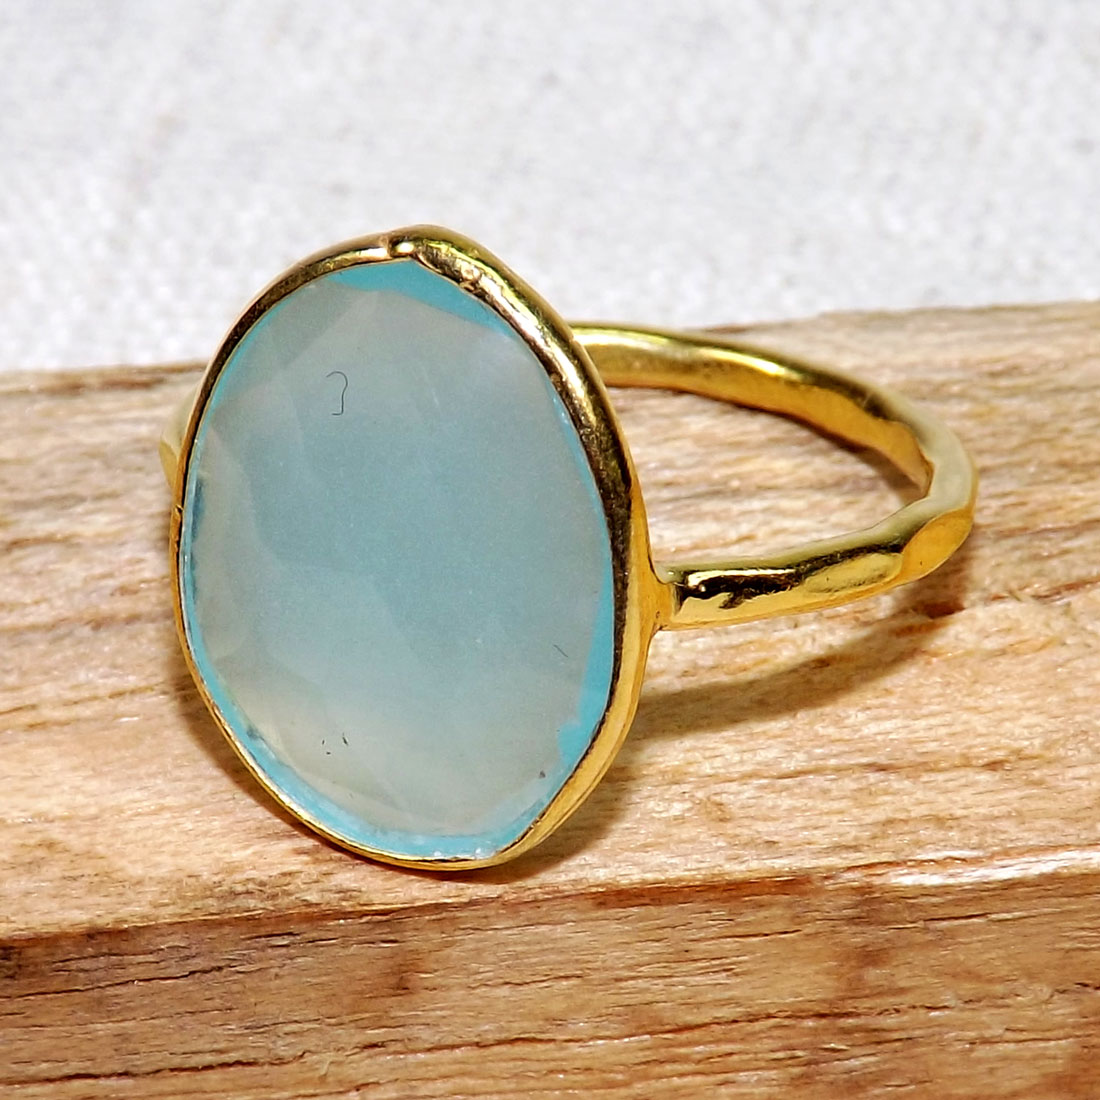 Aqua Chalcedony F - BGR970-18crt Gold Plated 925 Sterling Silver Rings With Natural